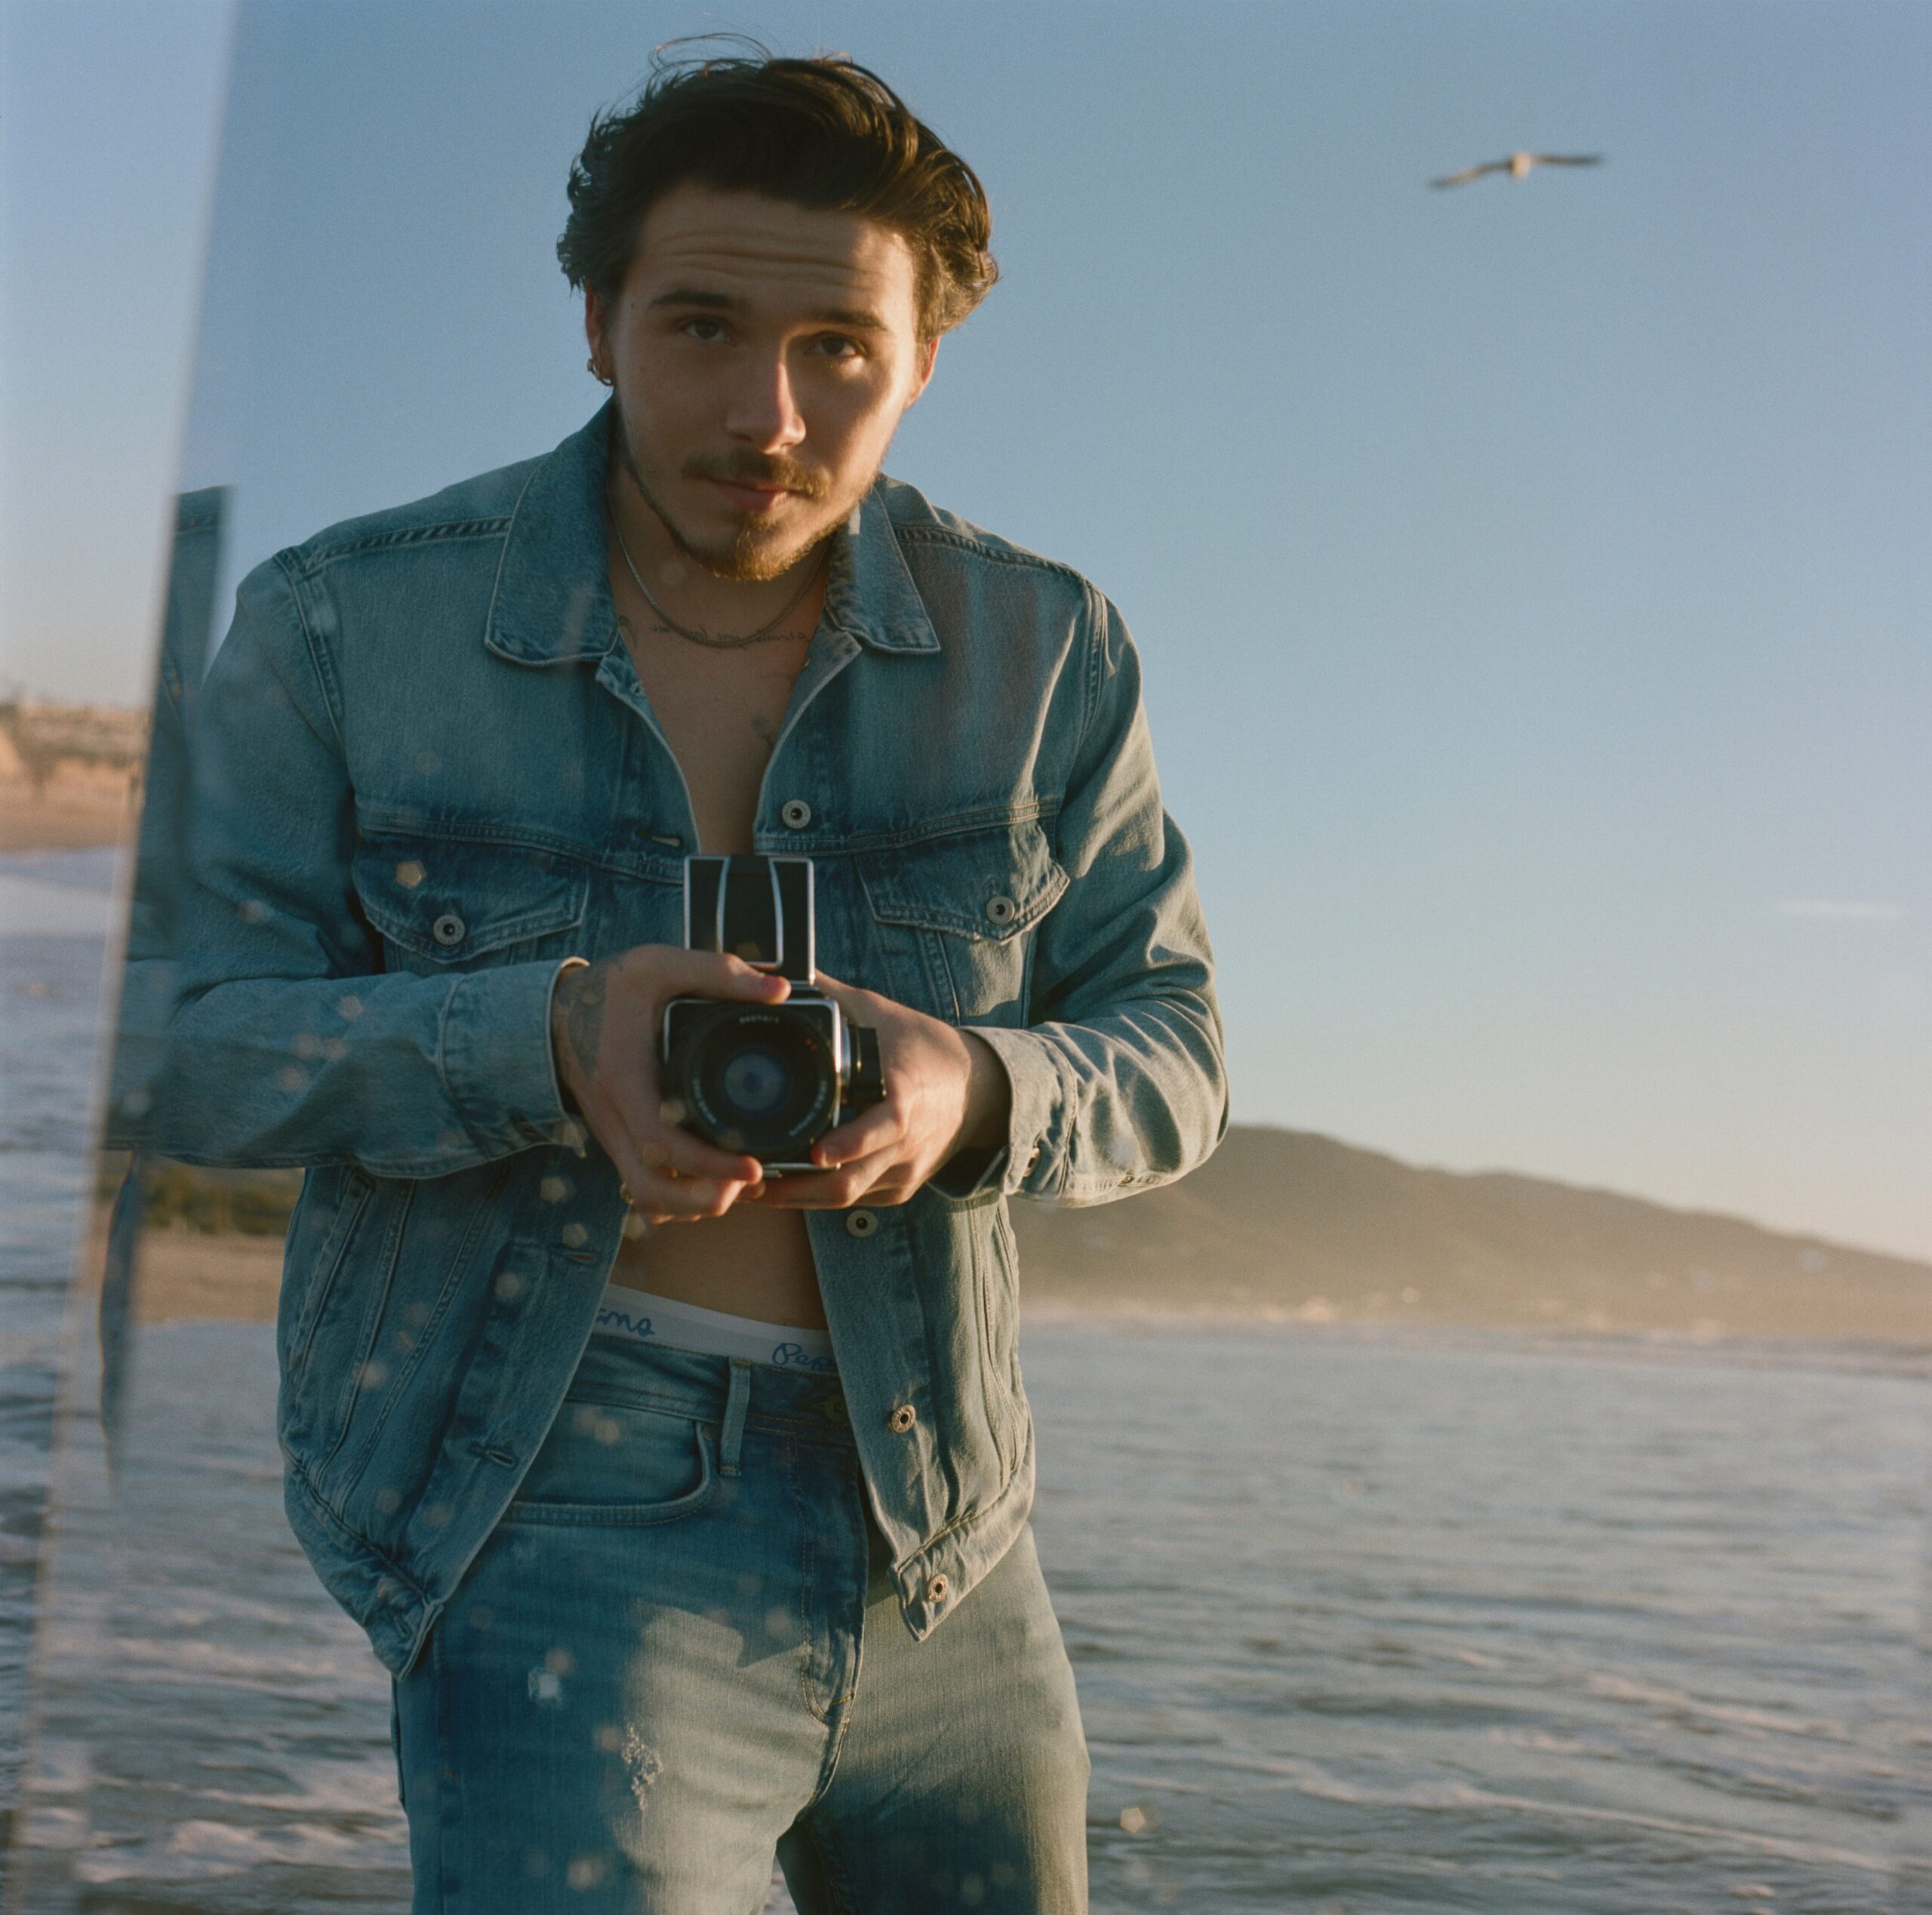 PEPE Jeans London unveils The First Chapter Of Its Collaboration With British Photographer Brooklyn Beckham.